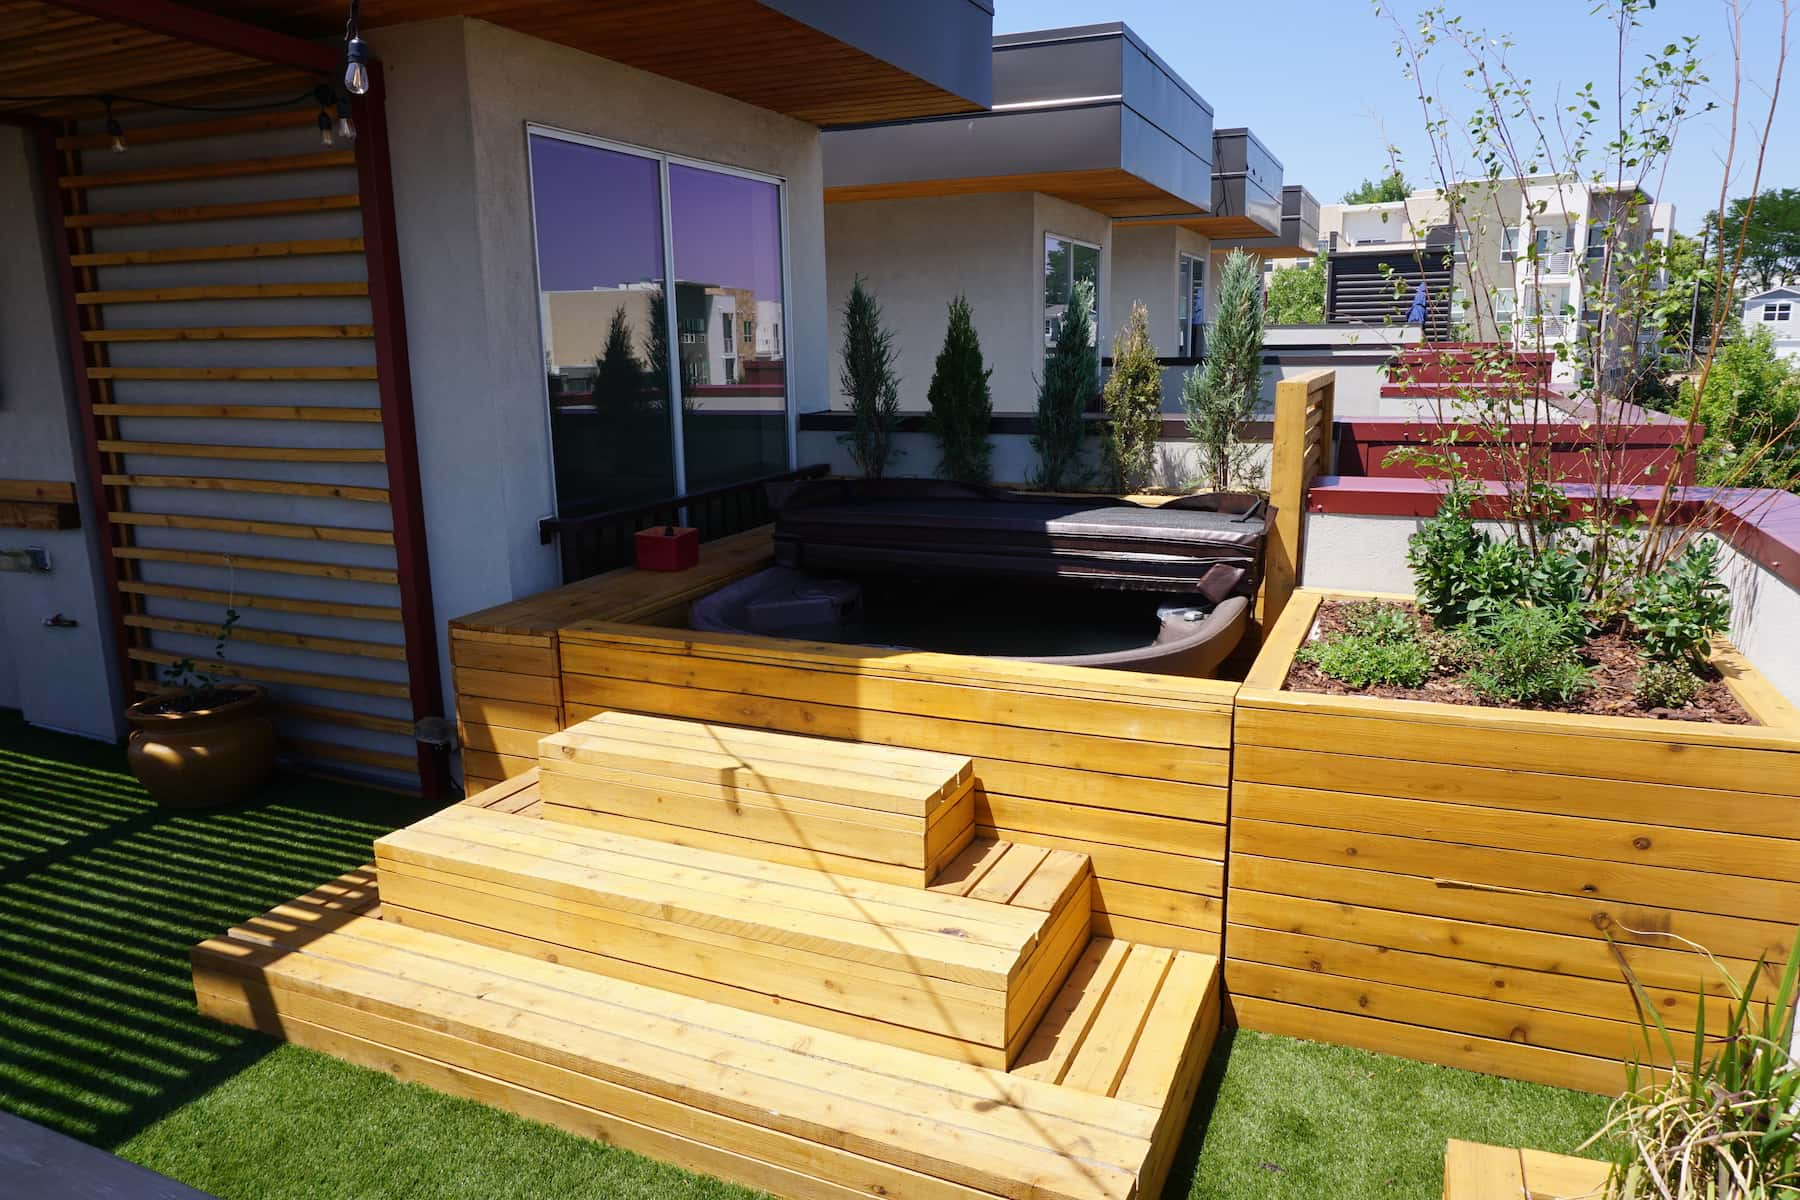 Pergola Daybed Planters Hot Tub Outdoor Dining TV Mile High Stadium Denver CO